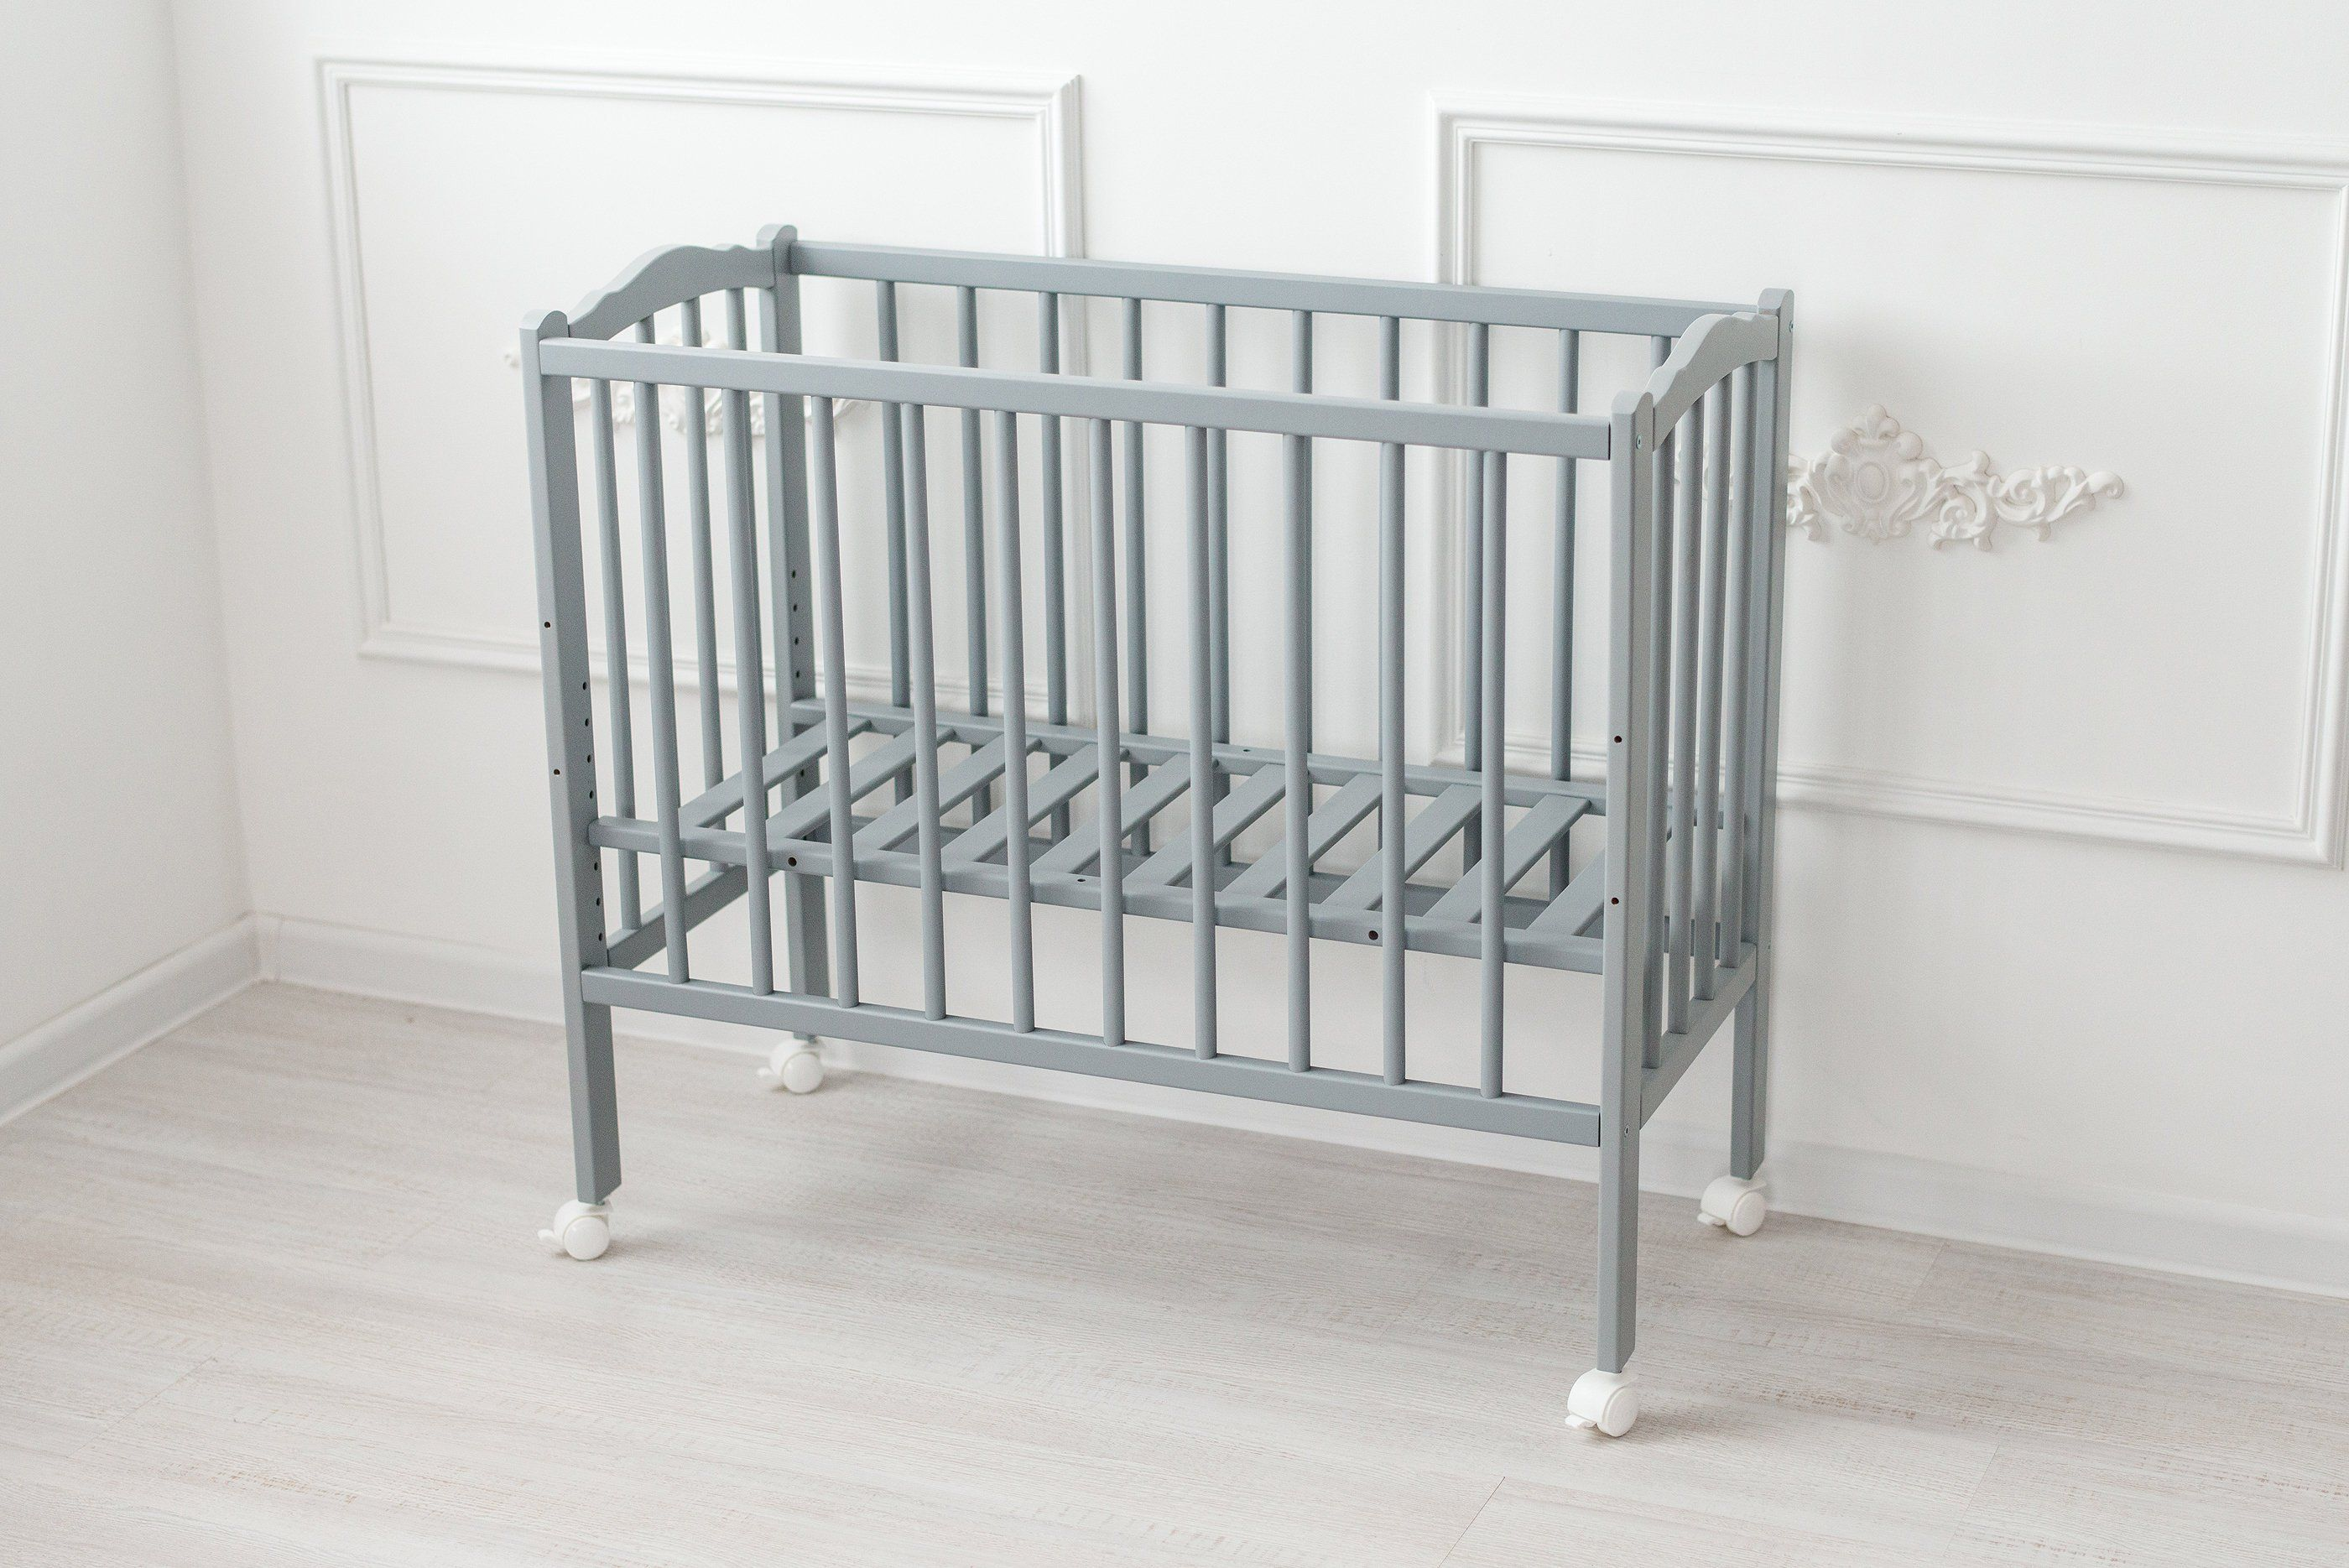 Baby Beistellbett 2in1 Plus Massivholz Buche Holzfarbe Grau Baby Side Bed Side Bed Bed